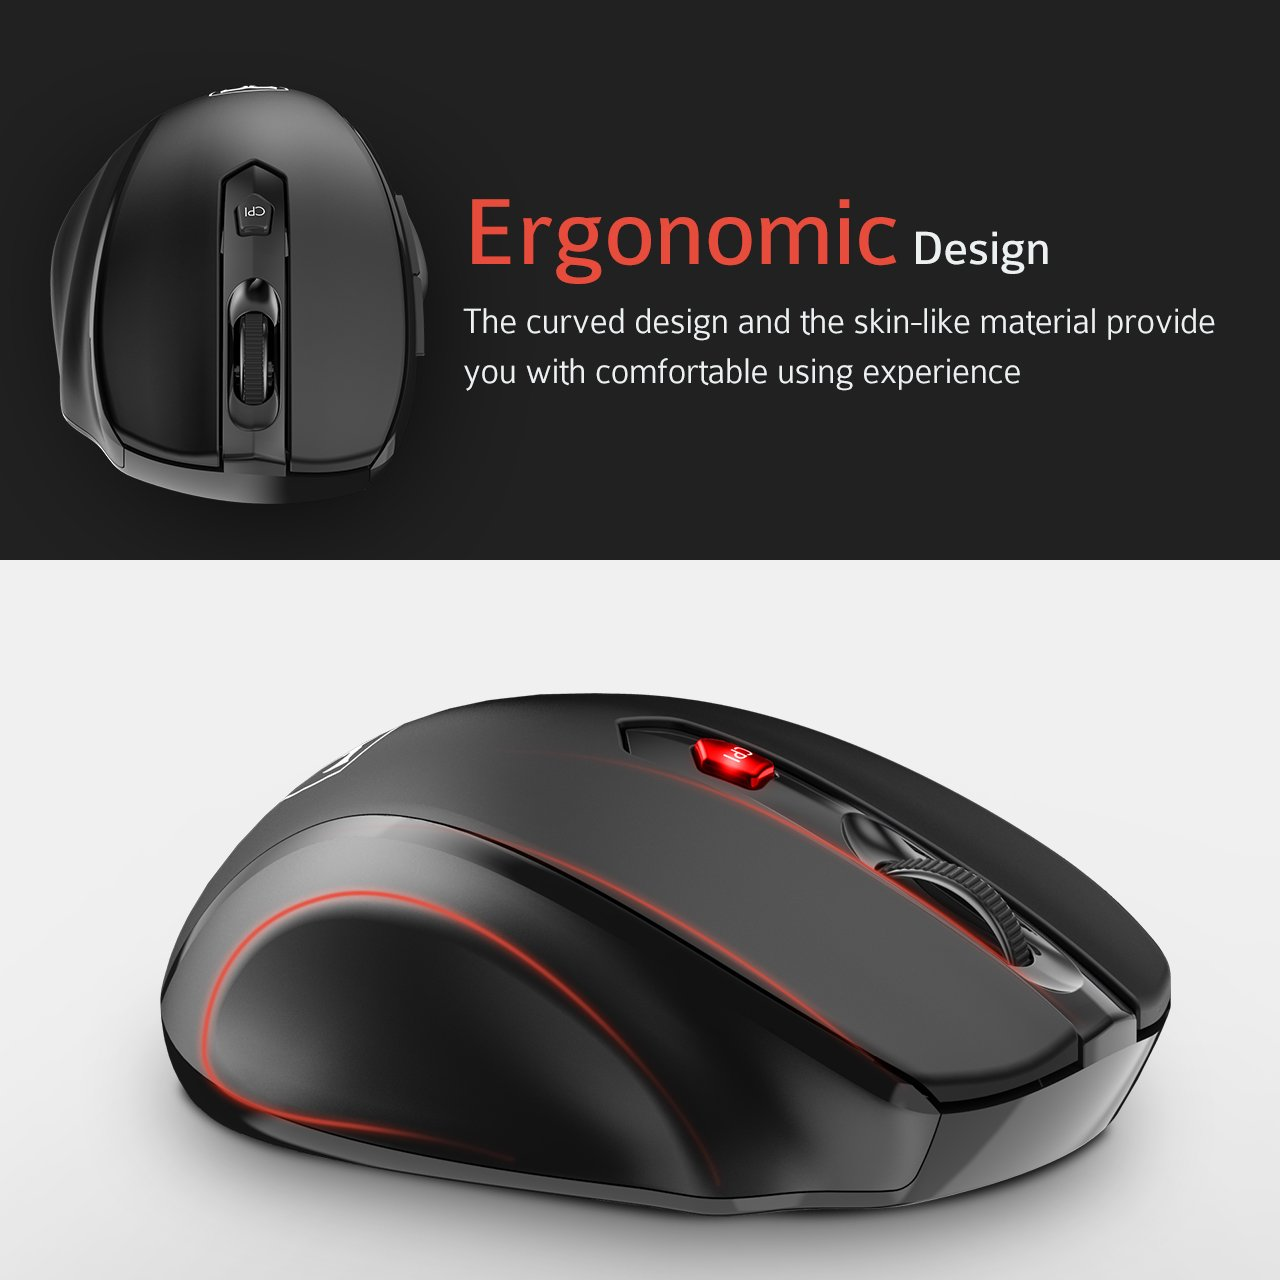 Super Energy Saving Nano Receiver Black Pictek 2.4G USB Wireless Mice Optical PC Laptop Computer Cordless Mouse 2400 DPI for Windows Mac Macbook Linux Wireless Mouse Updated Version 6 Buttons